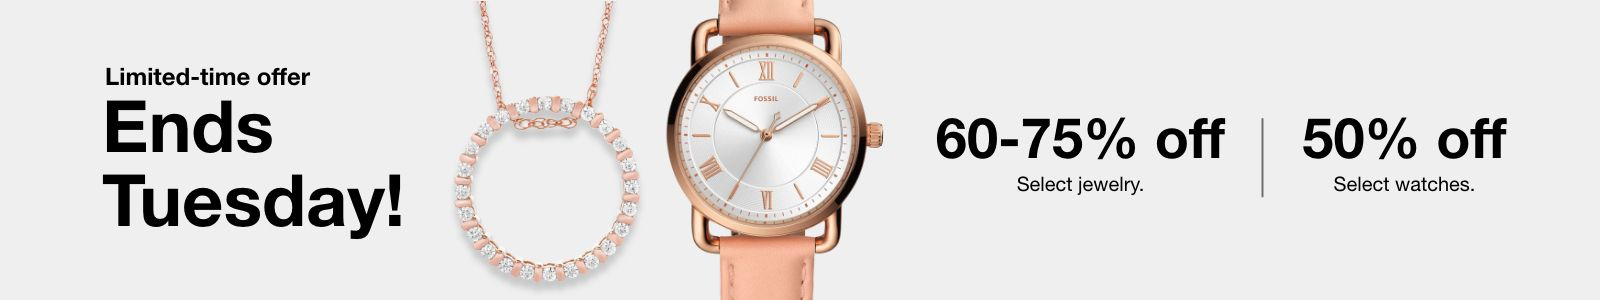 Limited-time offer, Ends Tuesday! 60-75% Off, Select jewelry, 50% Off, Select watches